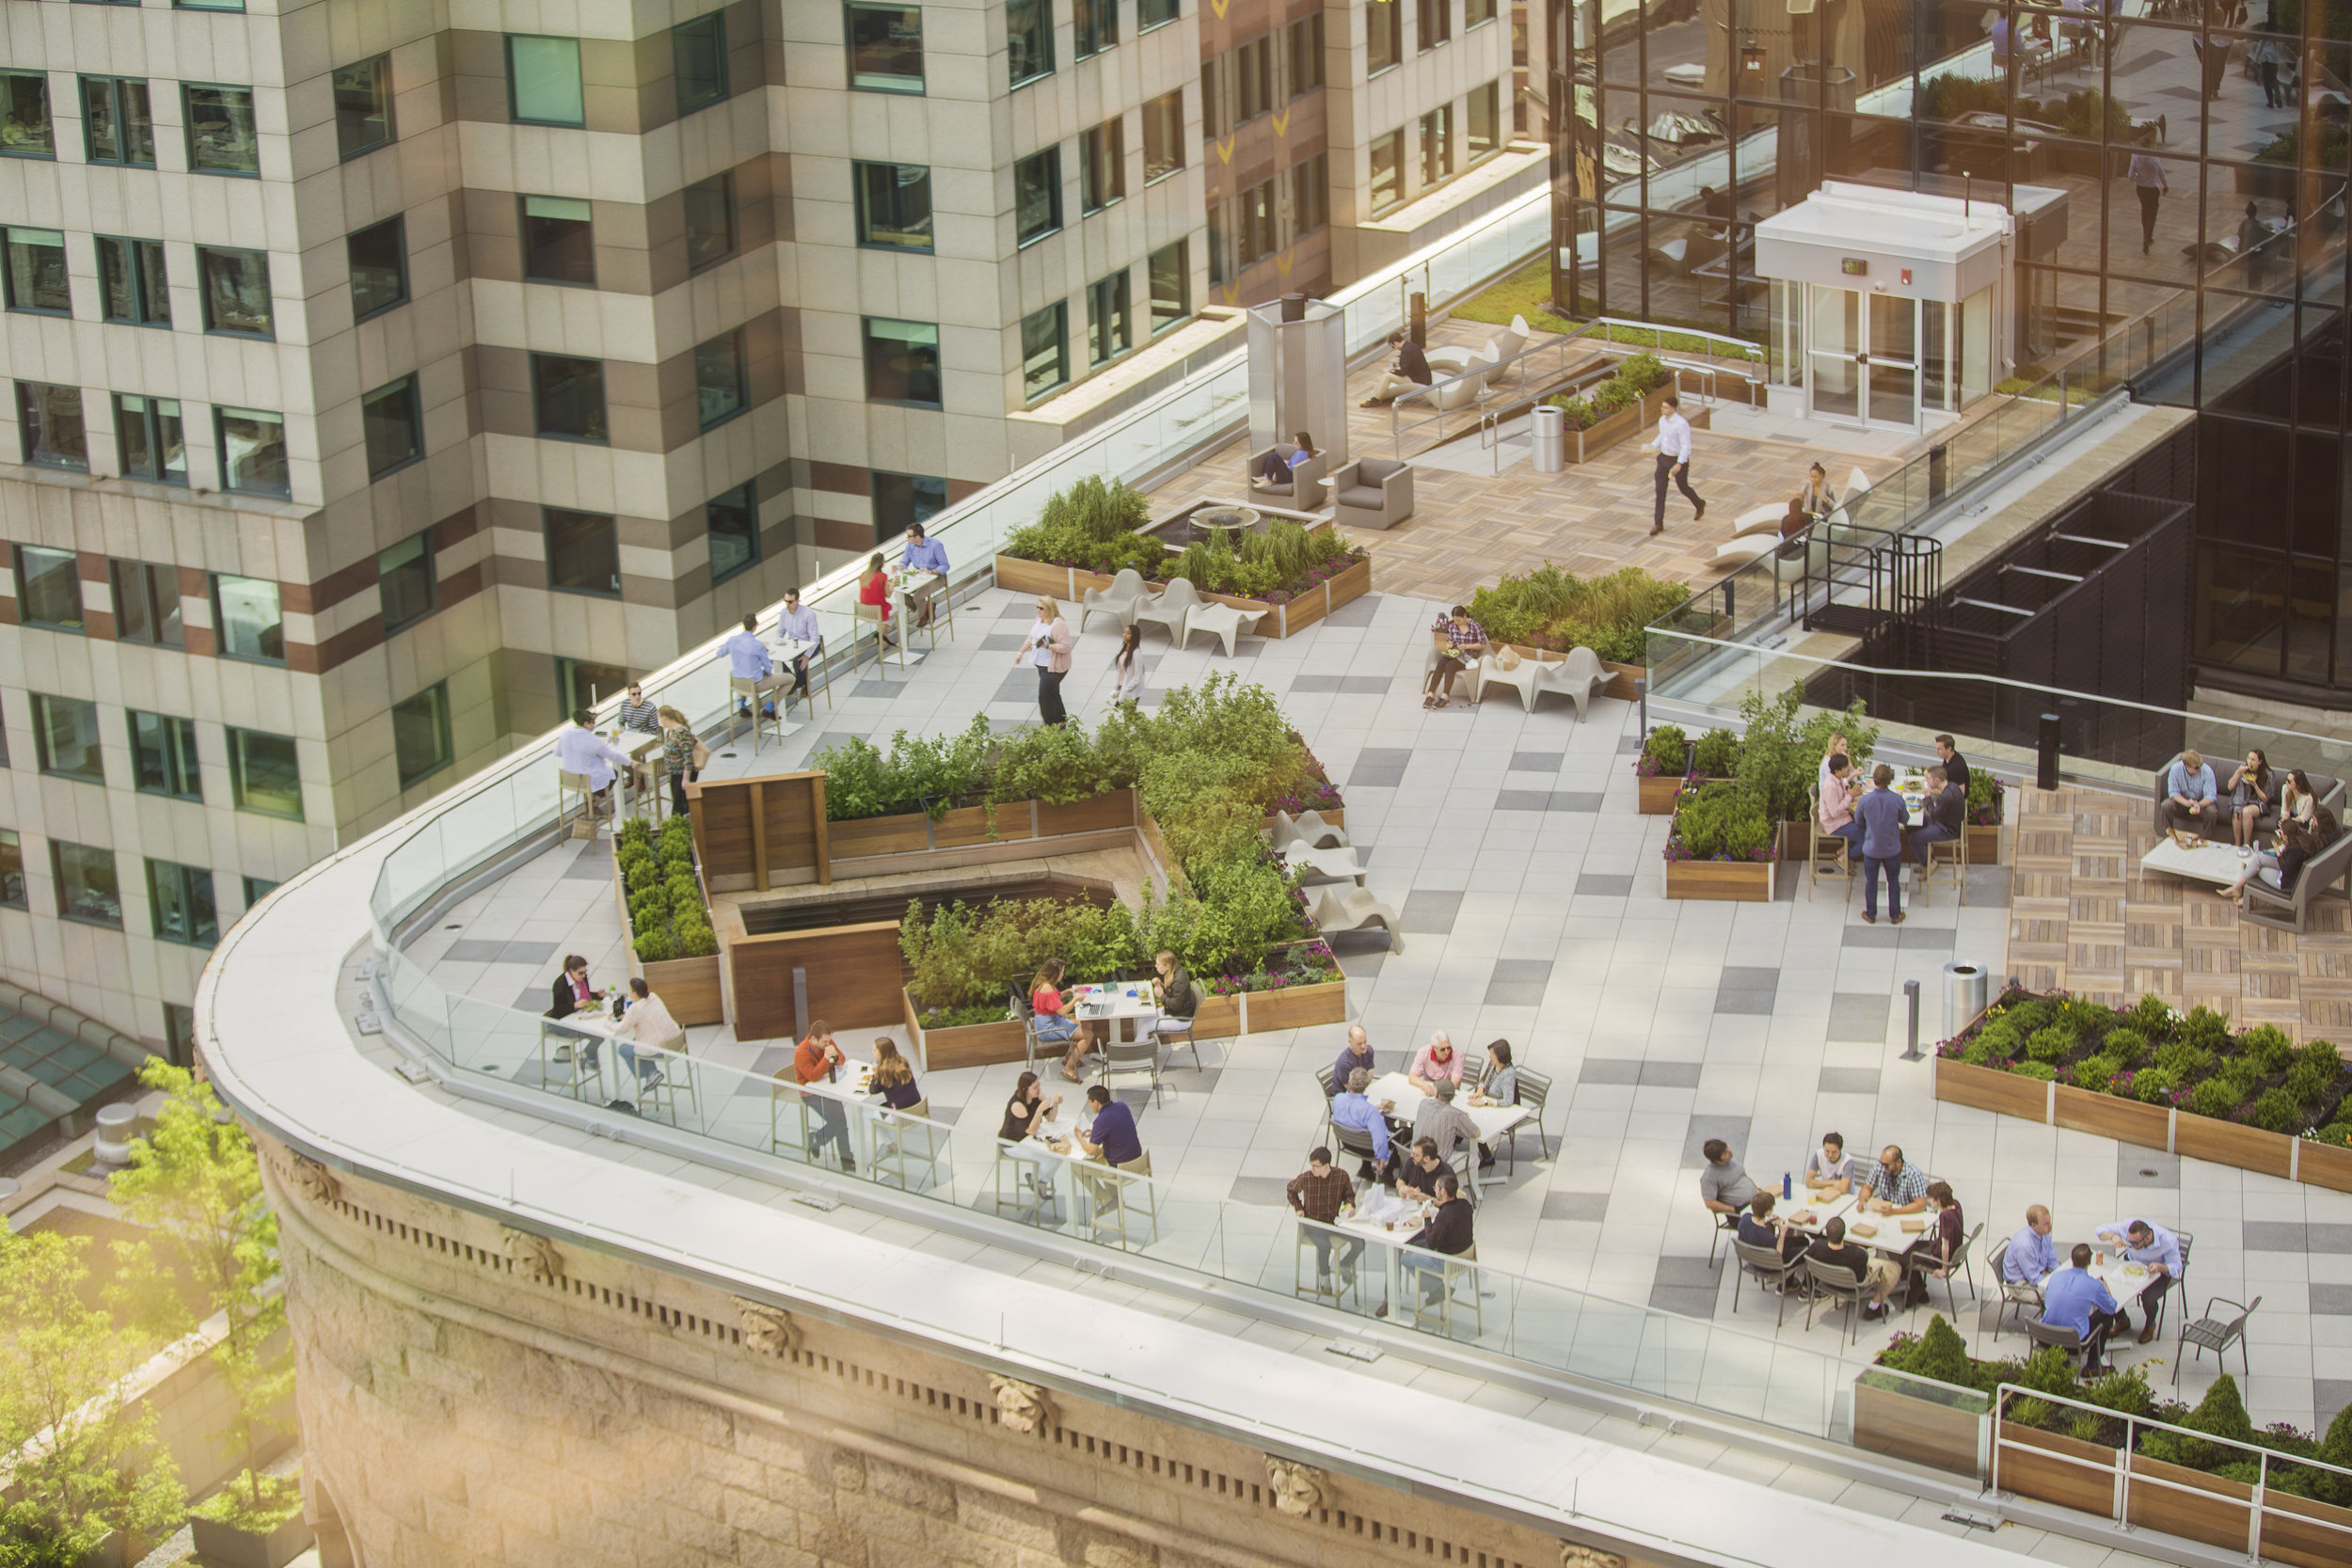 53 State Street Roof Deck (Photo by Ngoc Doan)